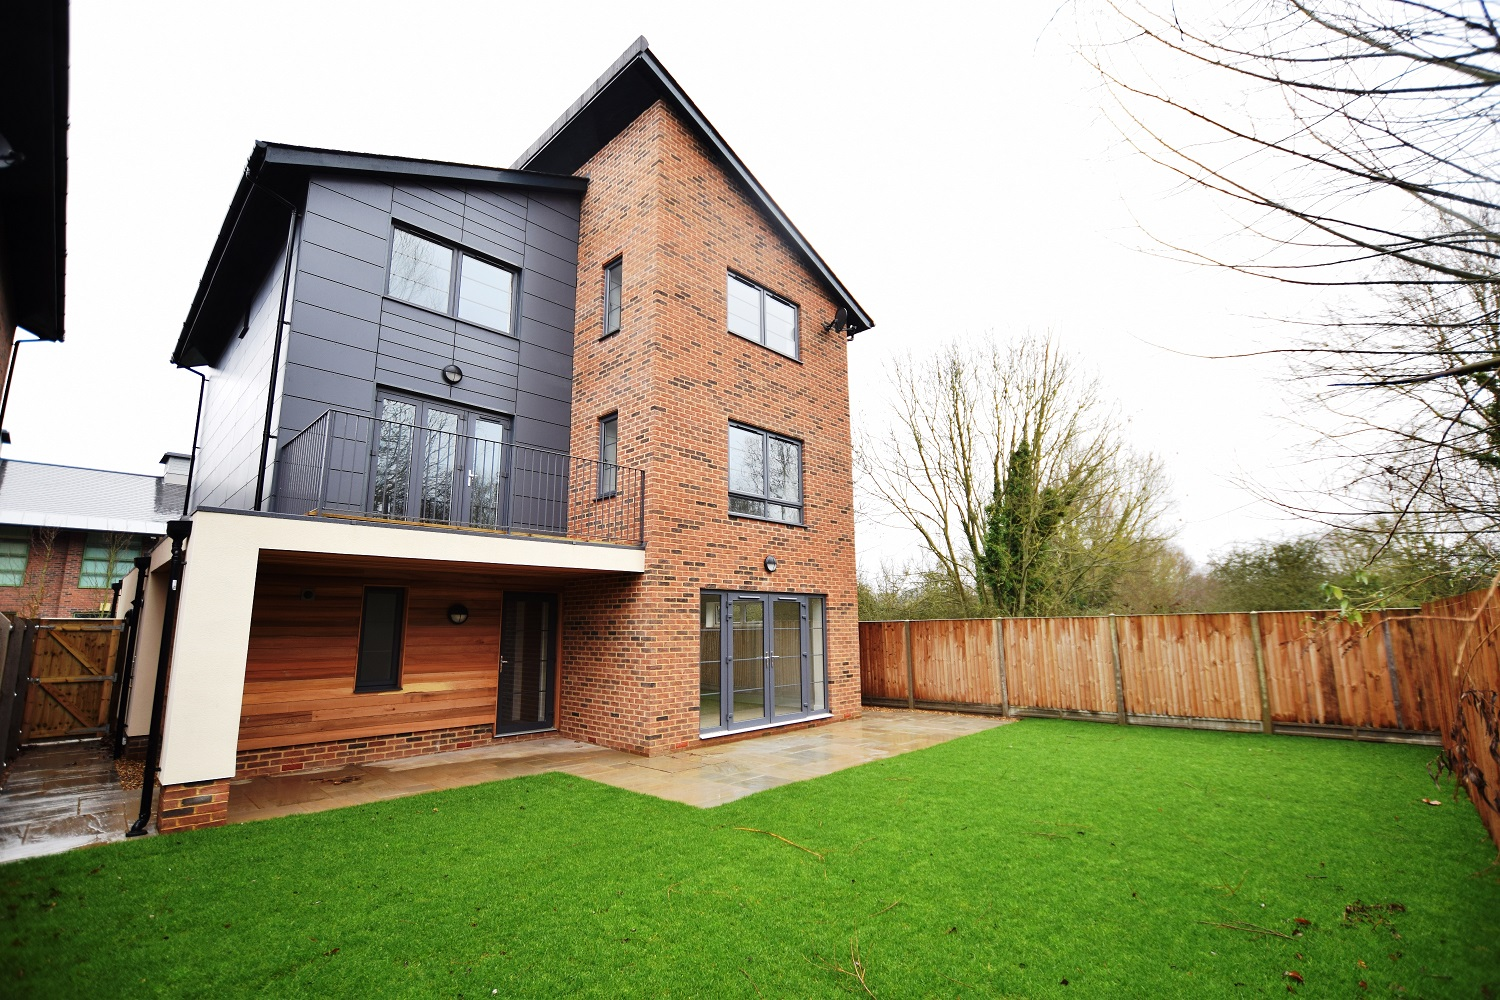 A brand new 5 bedroom detached house with garage and parking.